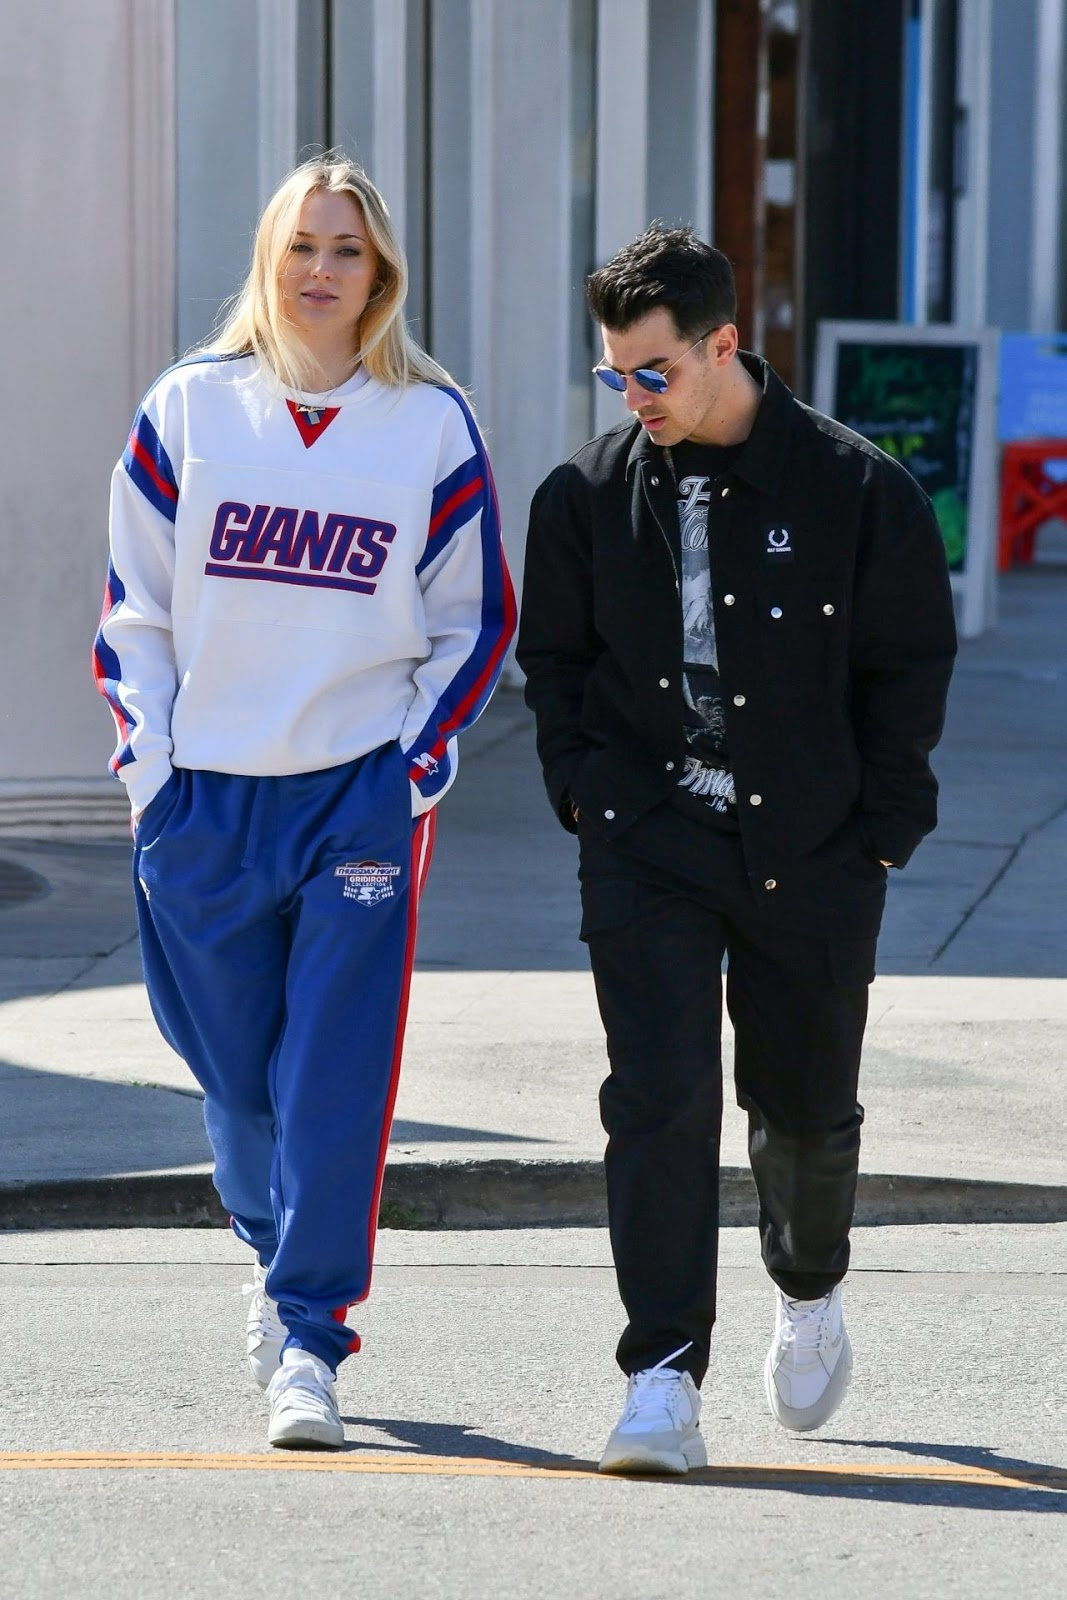 Sophie dressed down in a New York Giants hoodie with matching track pants